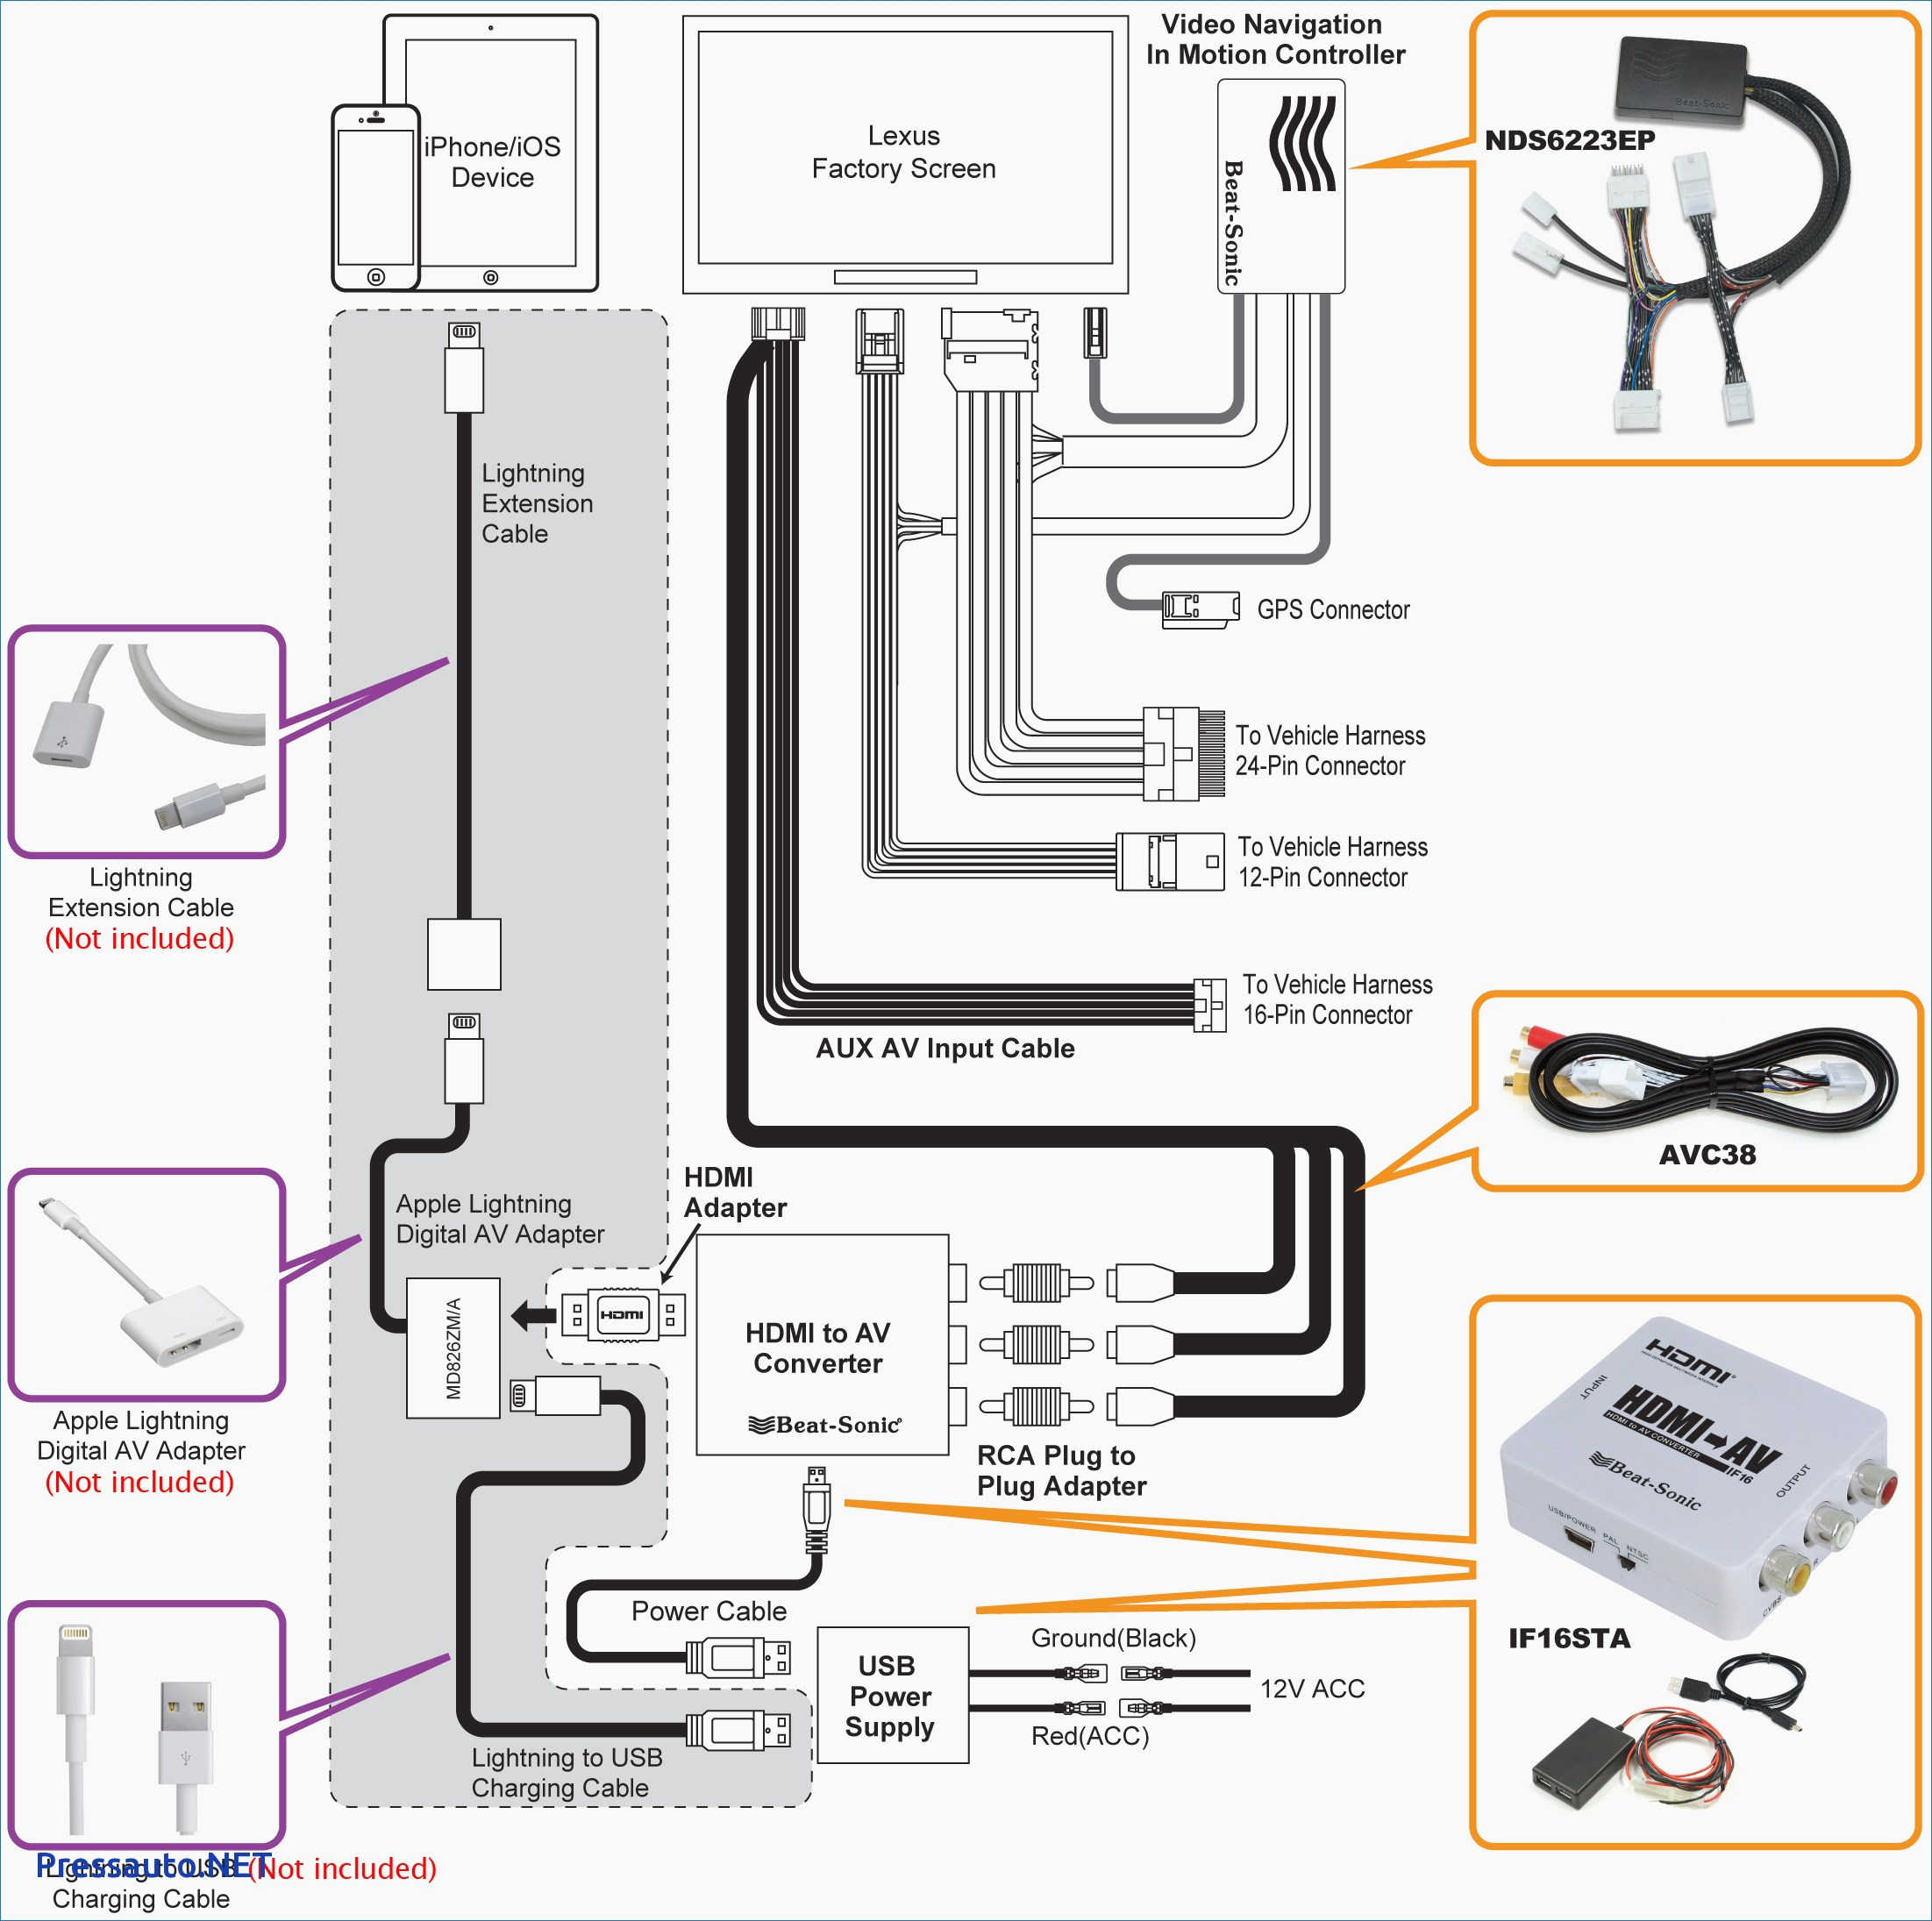 Ipod Cable Wiring Diagram   Manual E-Books - Wiring Diagram For Usb Cable To Ipod